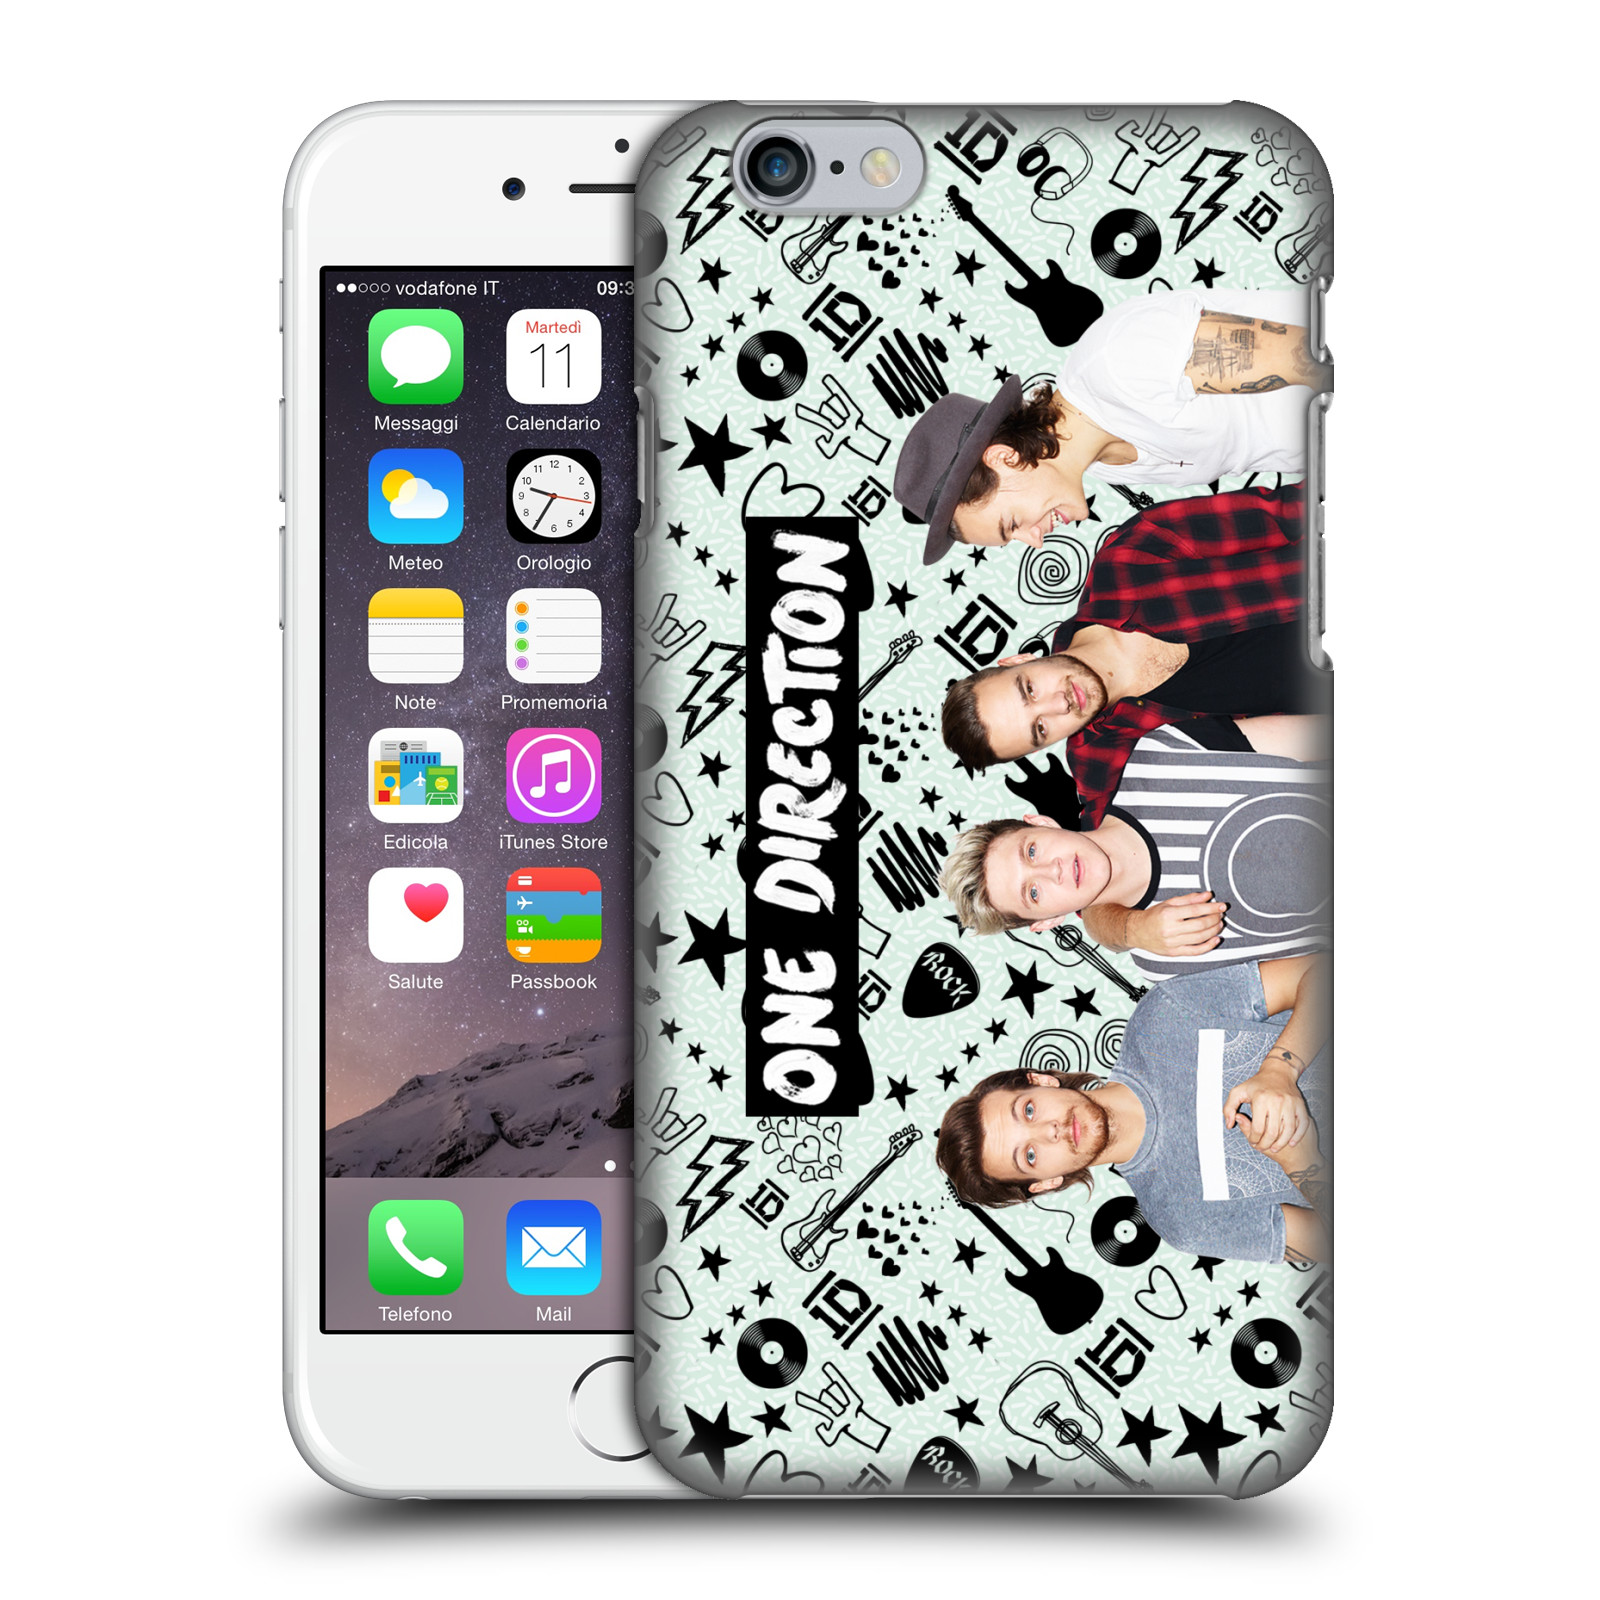 Ufficiale-One-Direction-Foto-di-gruppo-icona-DOODLE-BACK-CASE-per-APPLE-iPHONE-Telefoni